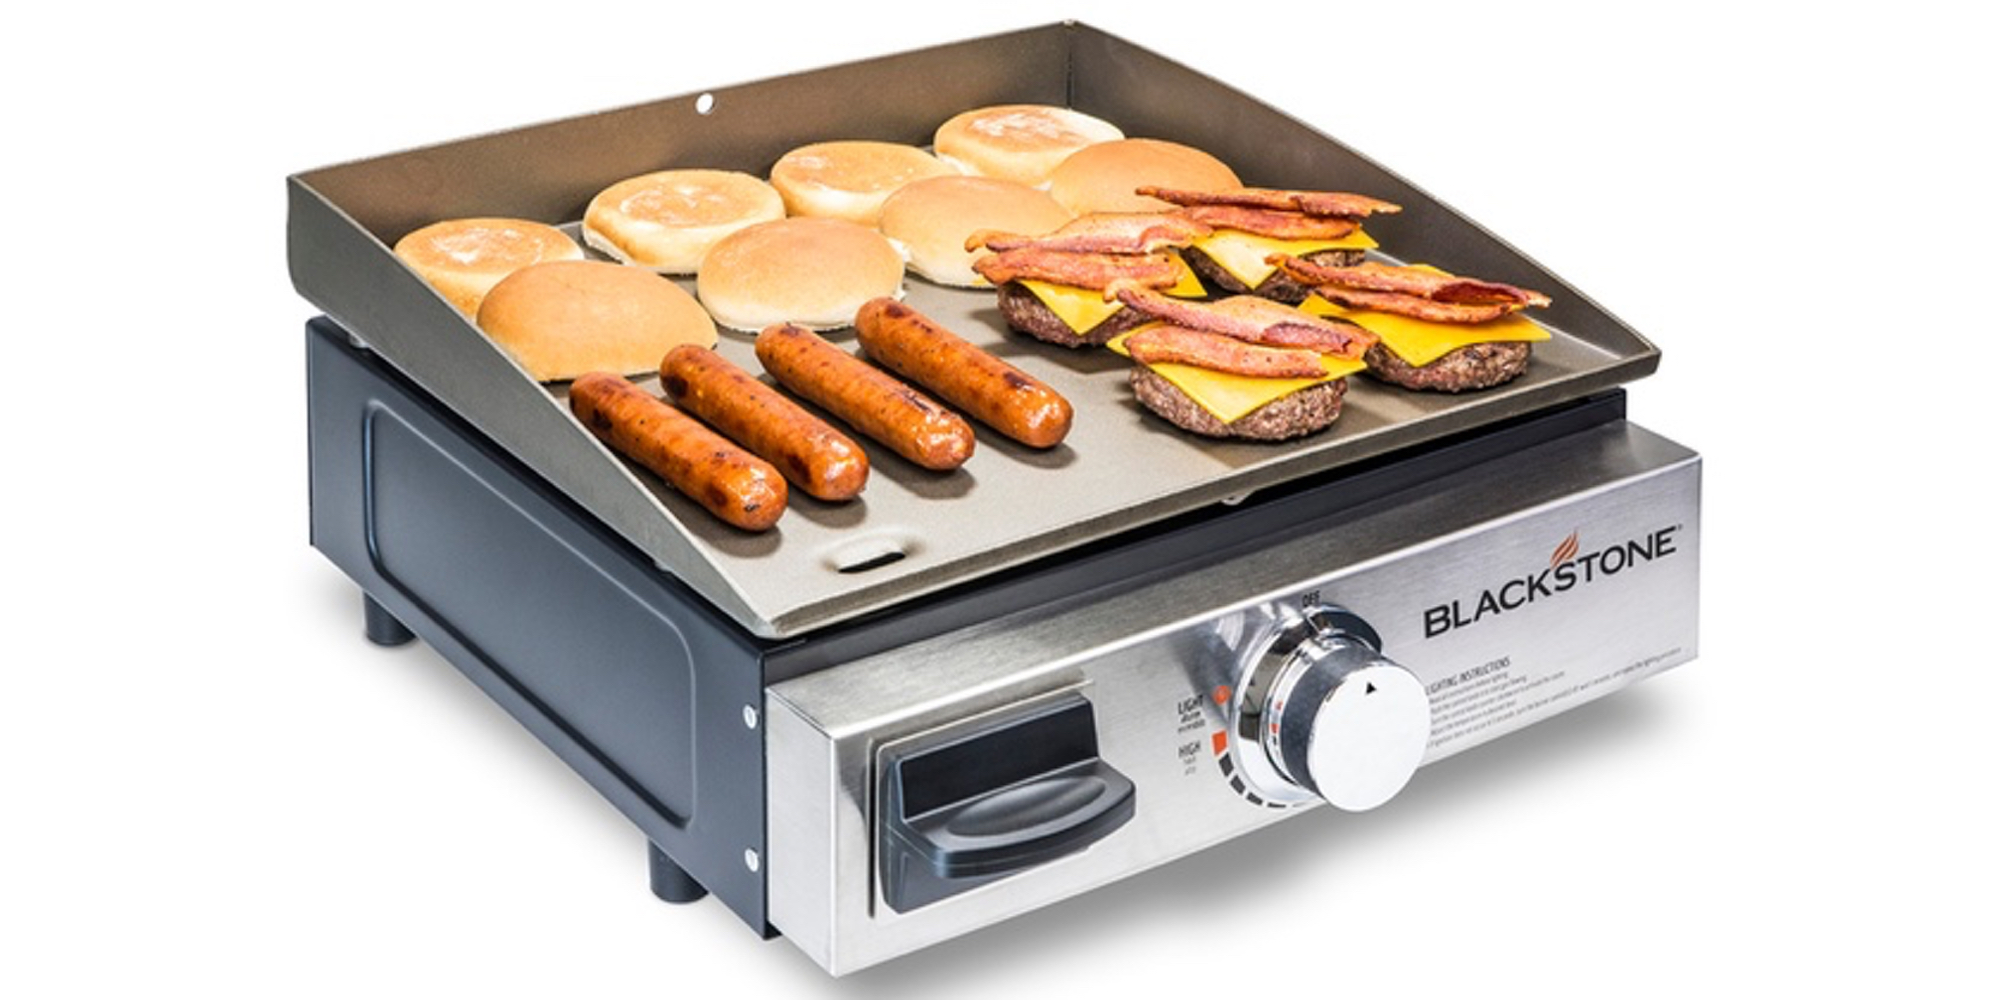 Blackstone Gas Griddle is the perfect way to cook on-the-go for $51.50